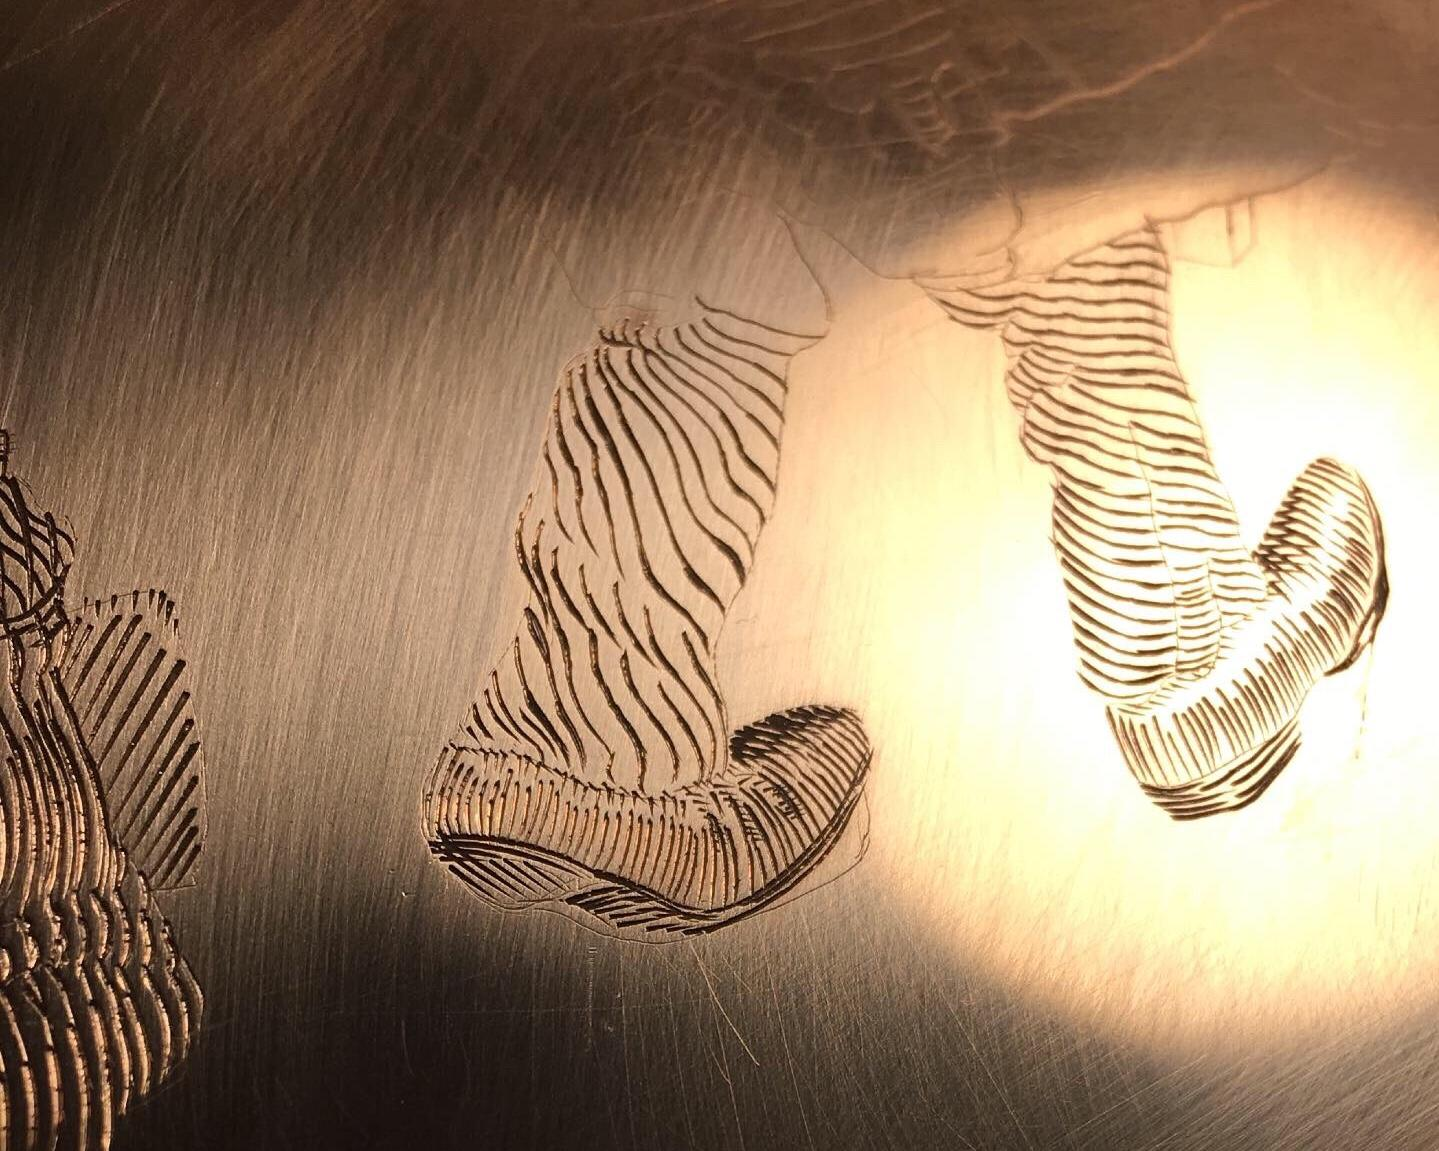 copper engraving